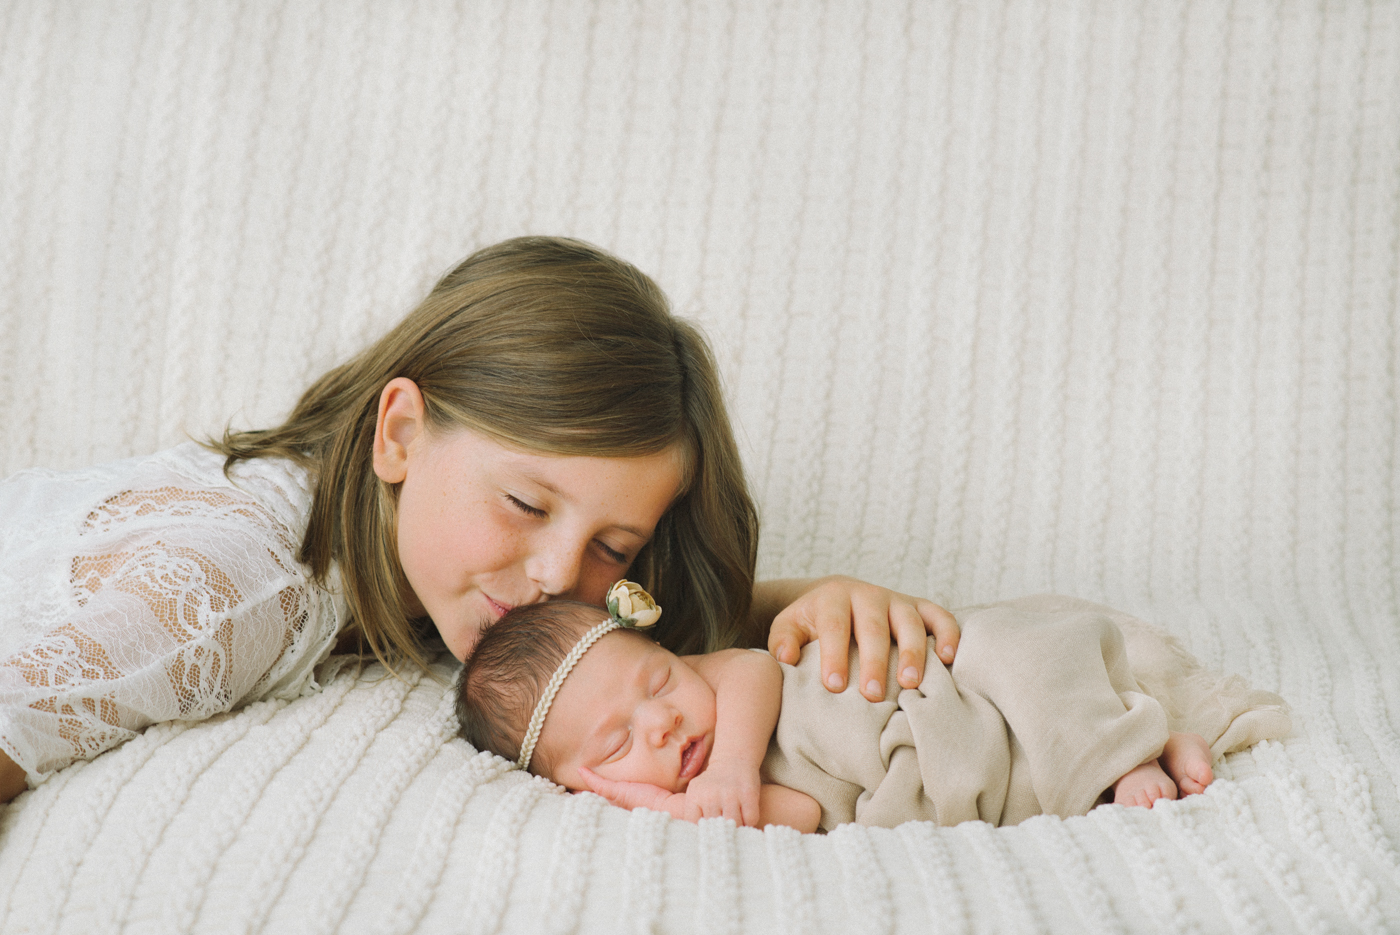 best-newborn-photographer-portland-oregon-shelley-marie-photography-baby-girl-with-sister-sibling-15